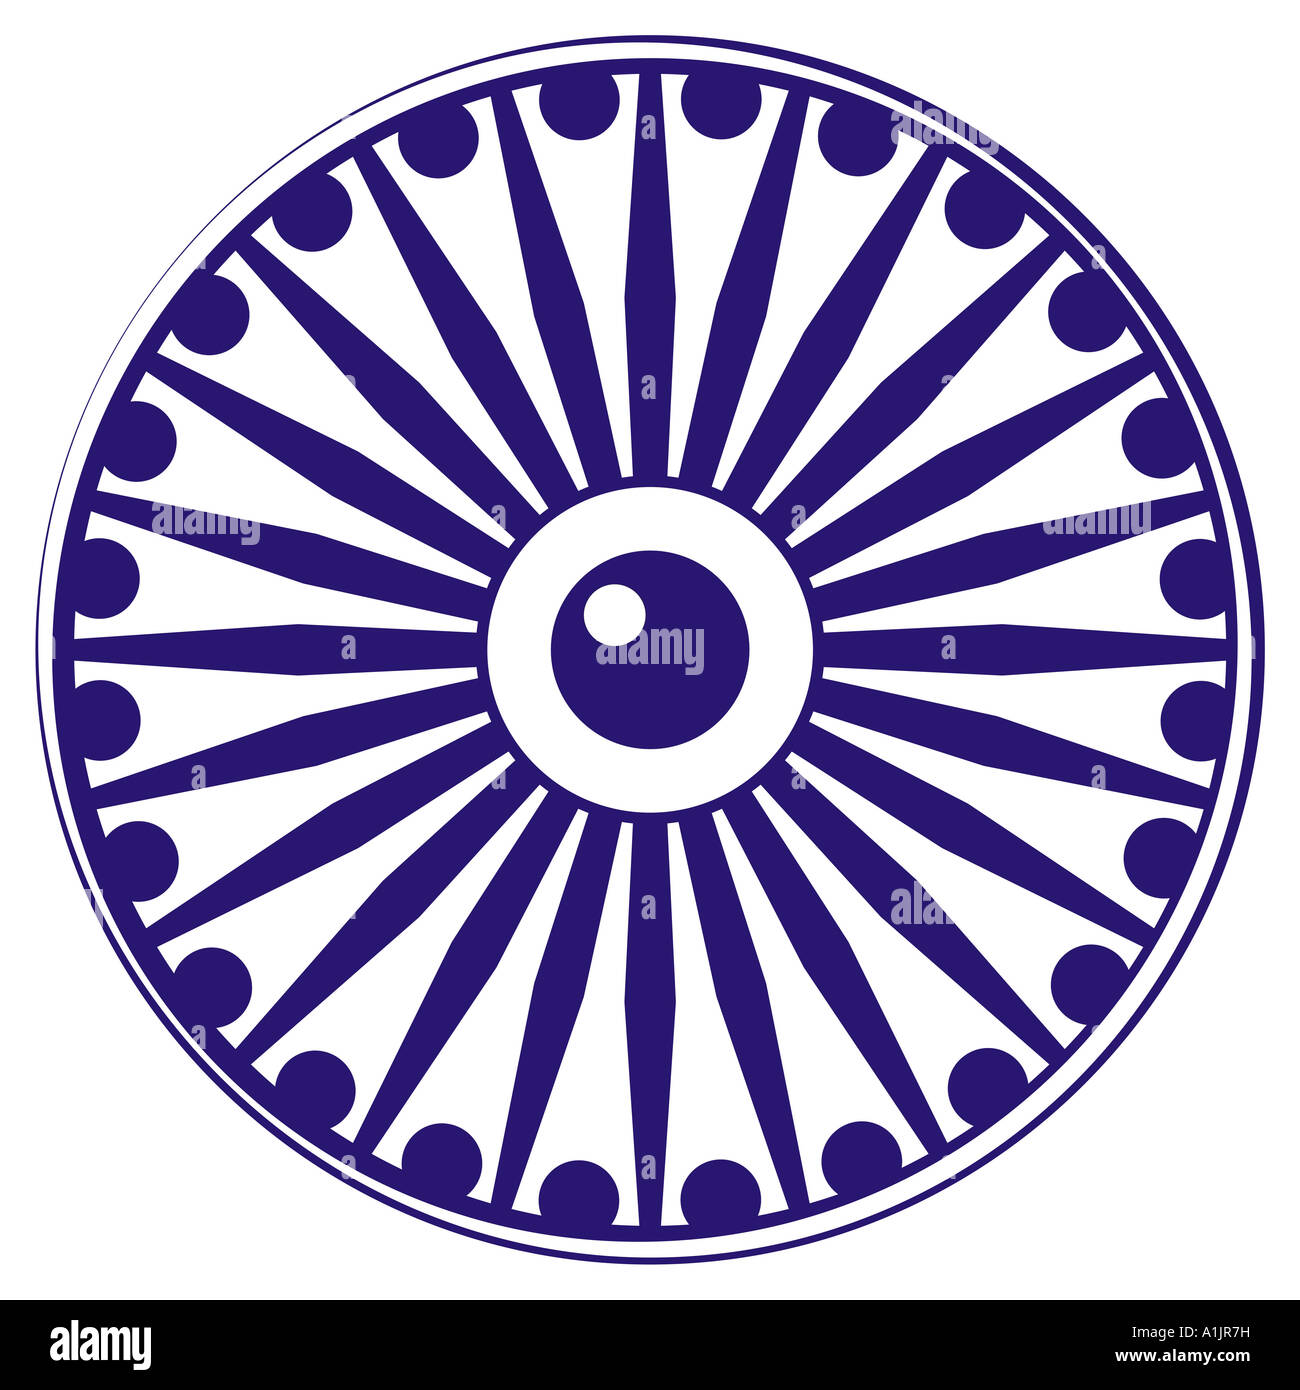 ashoka chakra Download ashoka chakra images and photos over 425 ashoka chakra pictures to choose from, with no signup needed download in under 30 seconds.